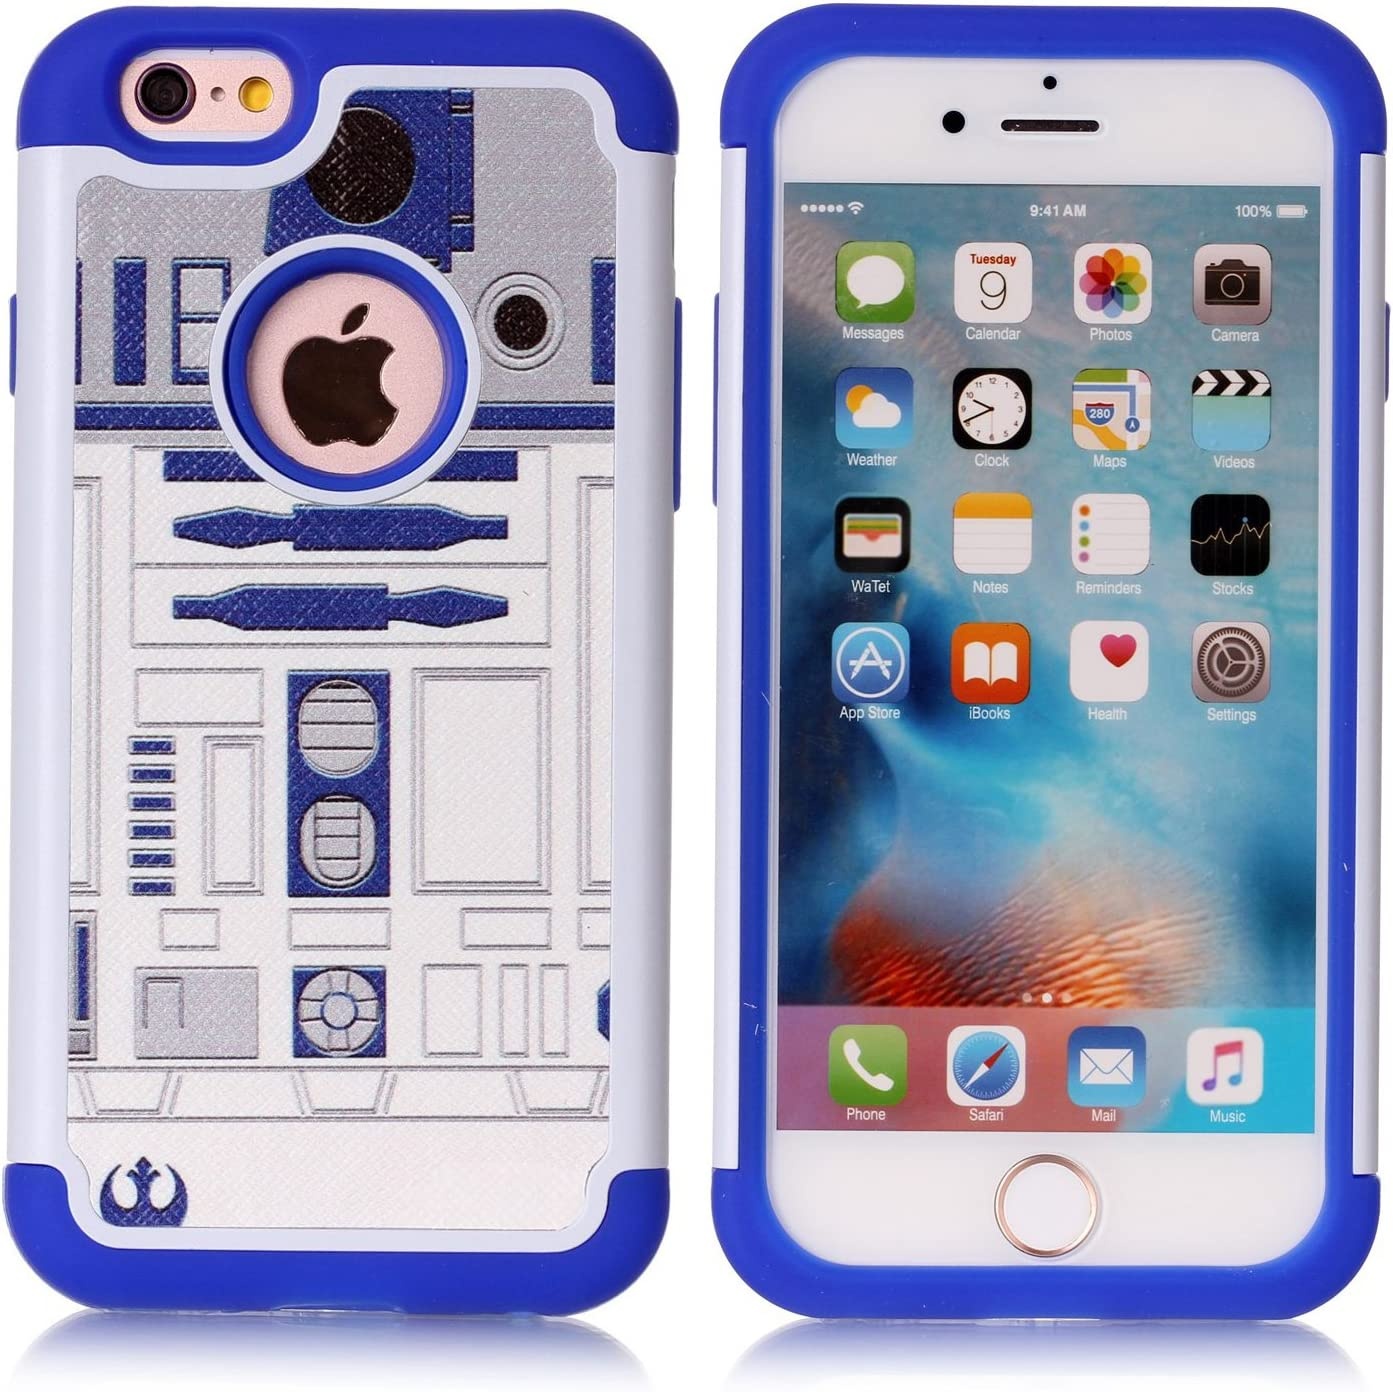 Iphone 6S Case,Iphone 6 Case - R2D2 Astromech Droid Robot Pattern Shock-Absorption Hard PC and Inner Silicone Hybrid Dual Layer Armor Defender Protective Case Cover for Apple iphone 6 iphone 6S